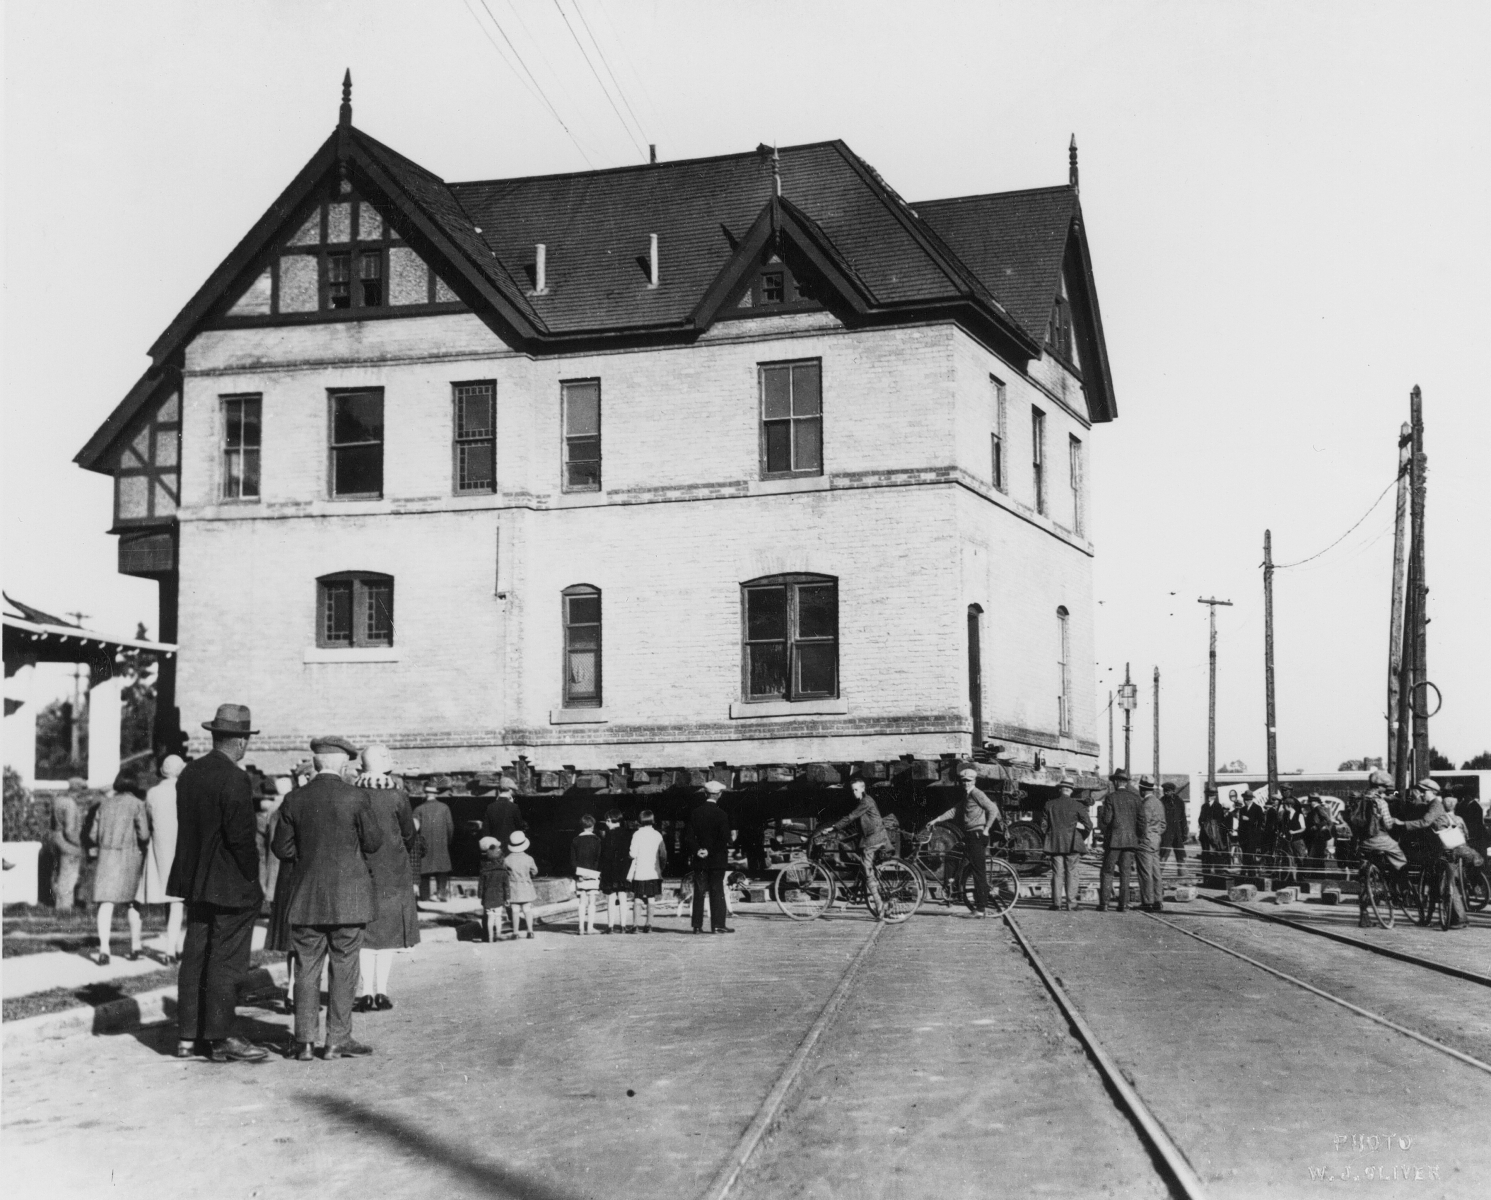 The Costigan house being moved across 17 Avenue S.W. in 1928.